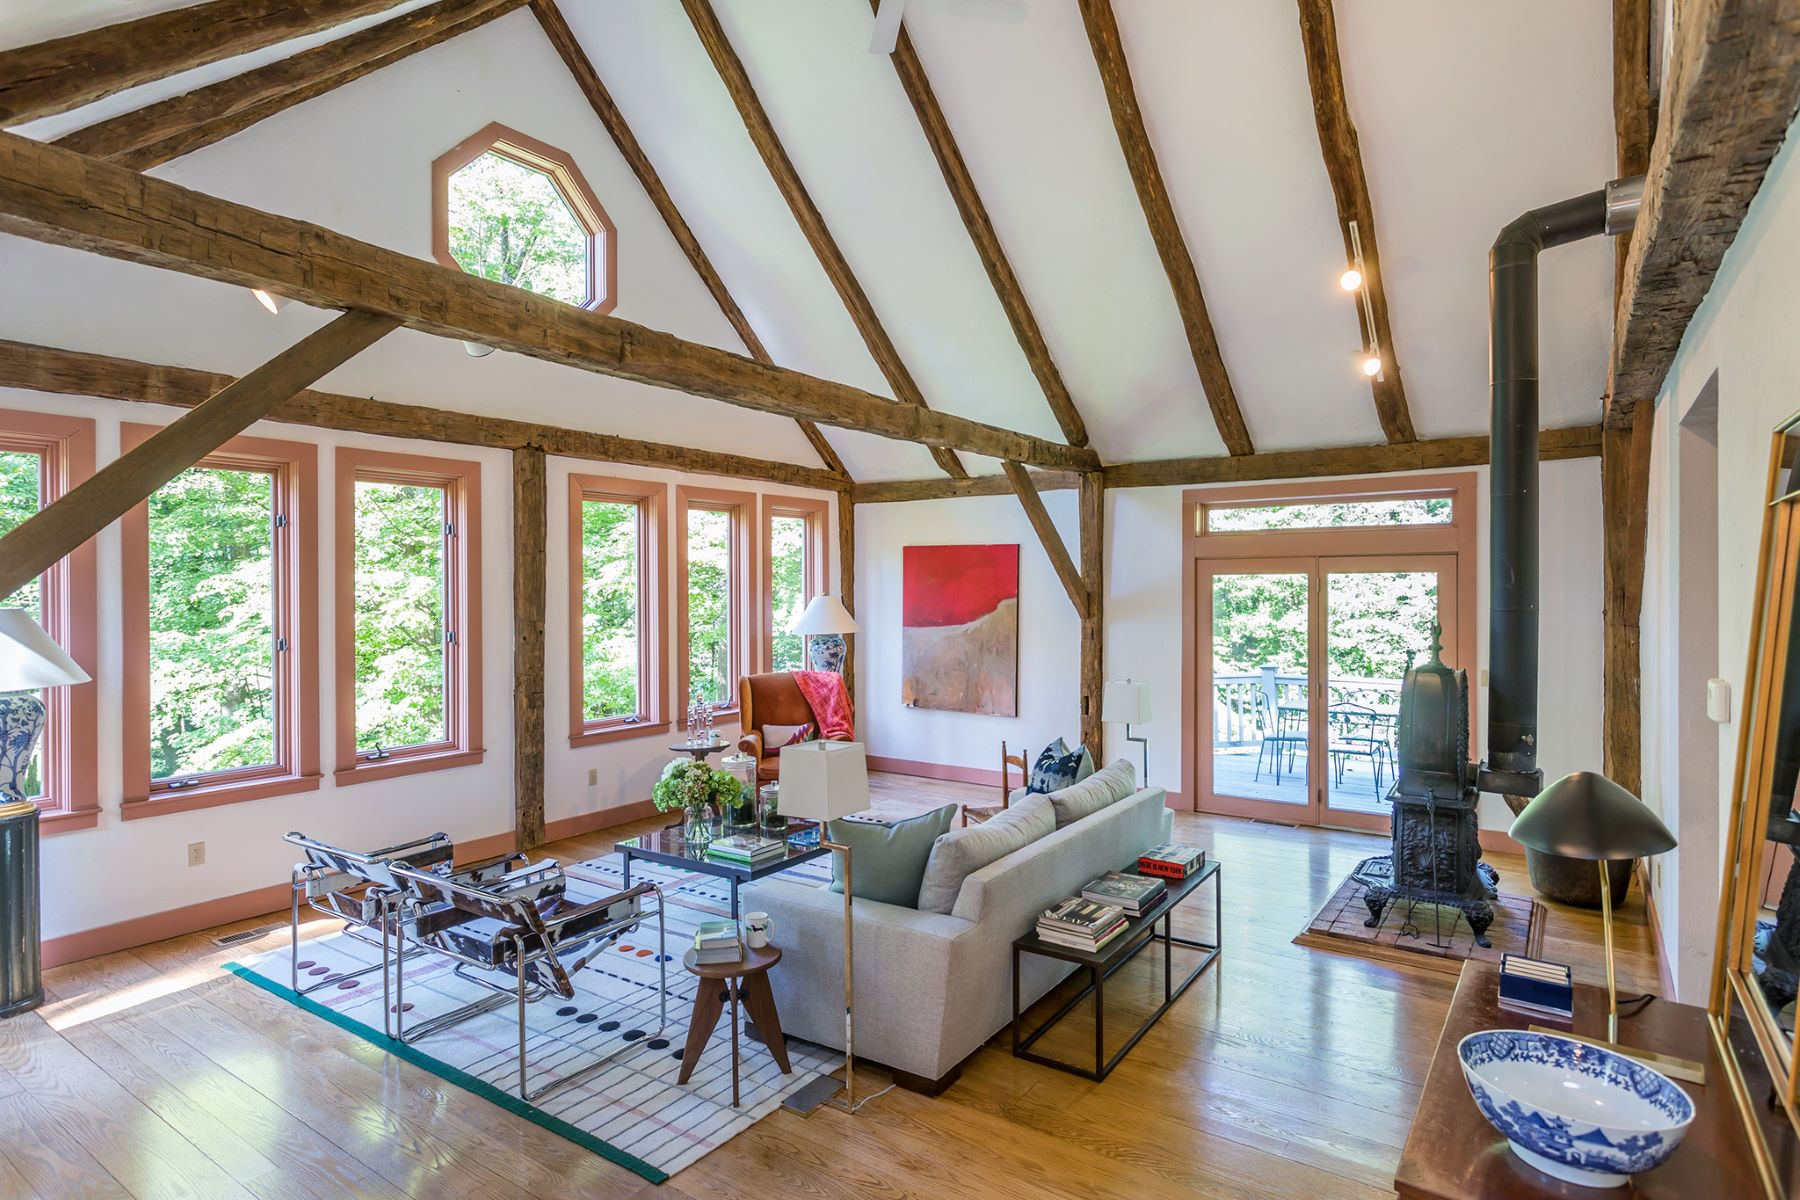 Single Family Homes for Sale at Cobble Brook Contemporary 123 Segar Mountain Road Kent, Connecticut 06757 United States